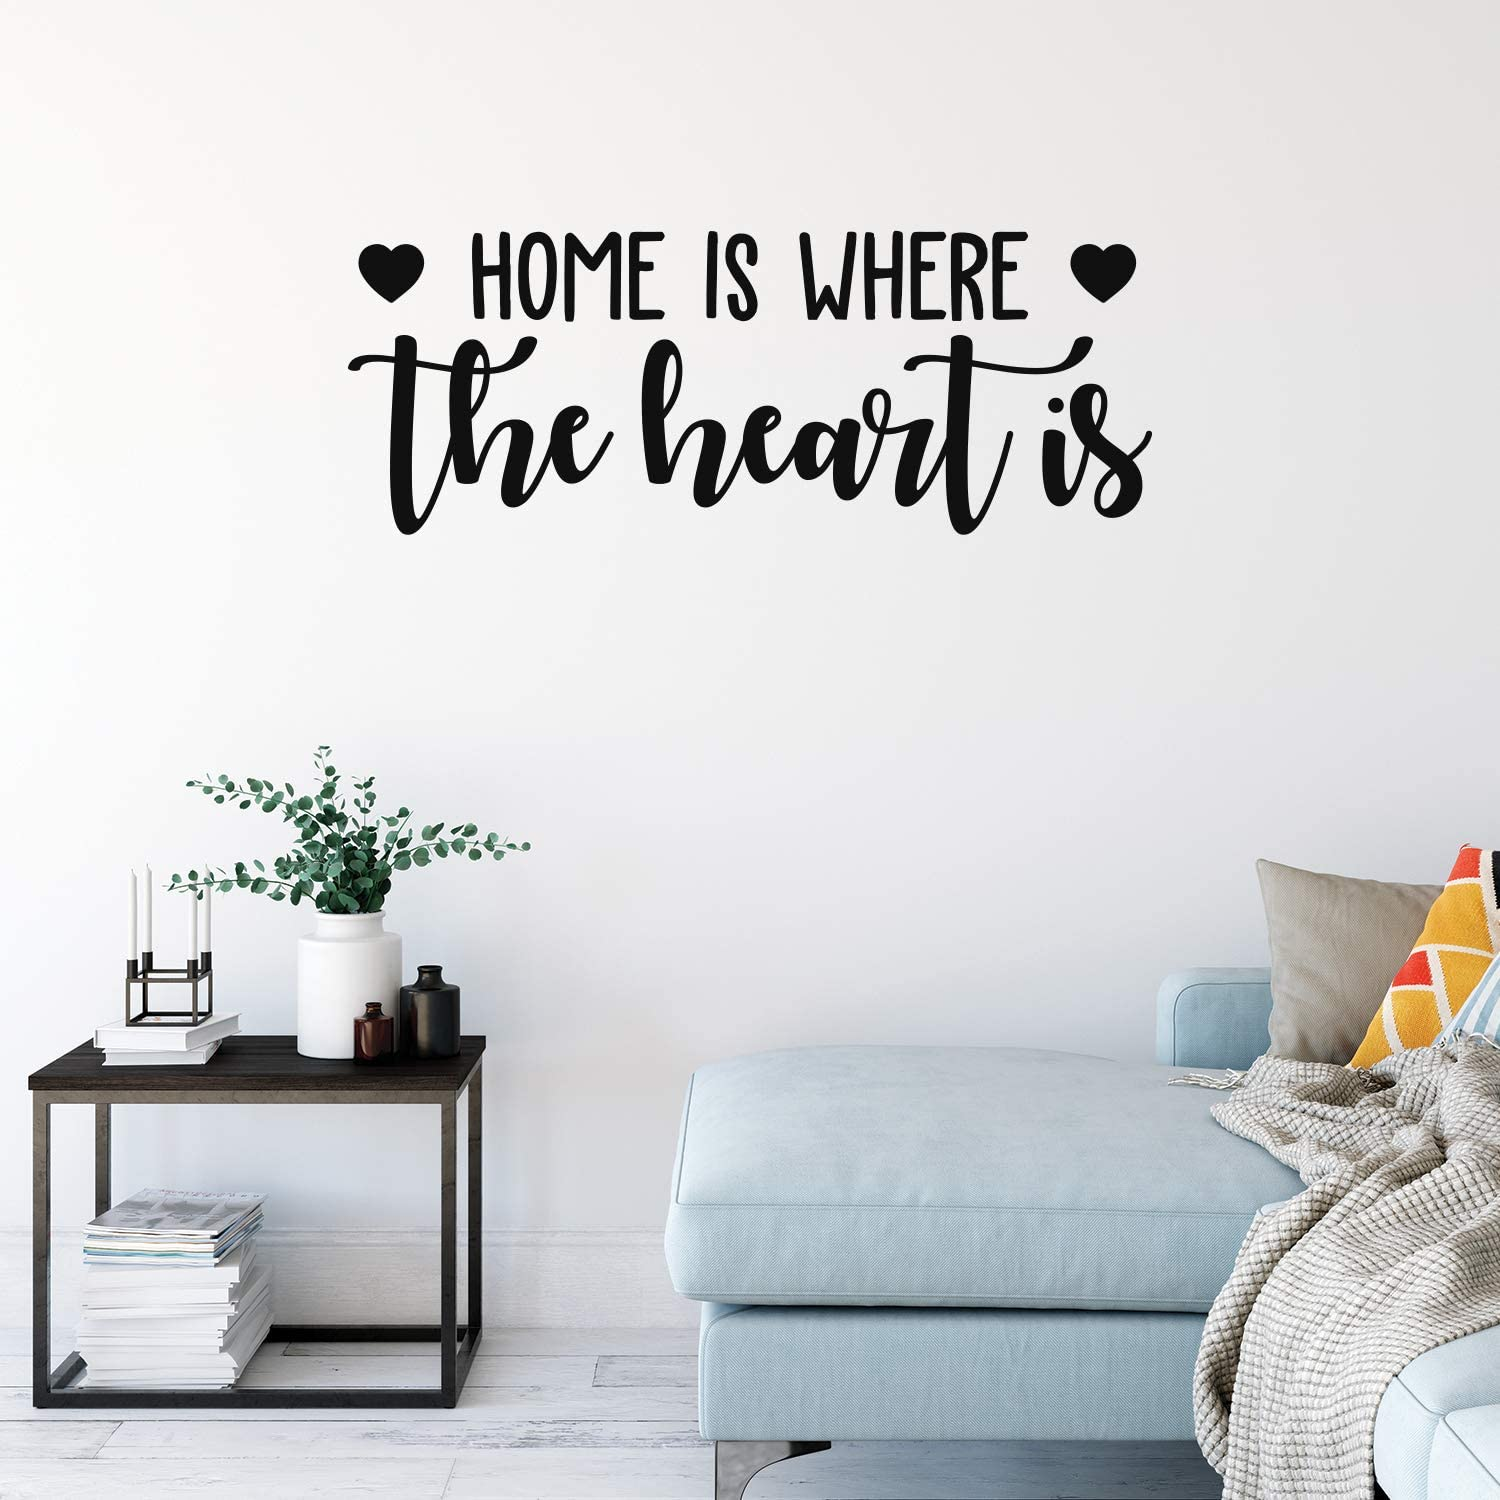 """Vinyl Wall Art Decal - Home is Where The Heart is - 14"""" x 38"""" - Modern Inspirational Love Quote Sticker for Family Living Room Dining Room Bedroom Entryway Decor (Black)"""